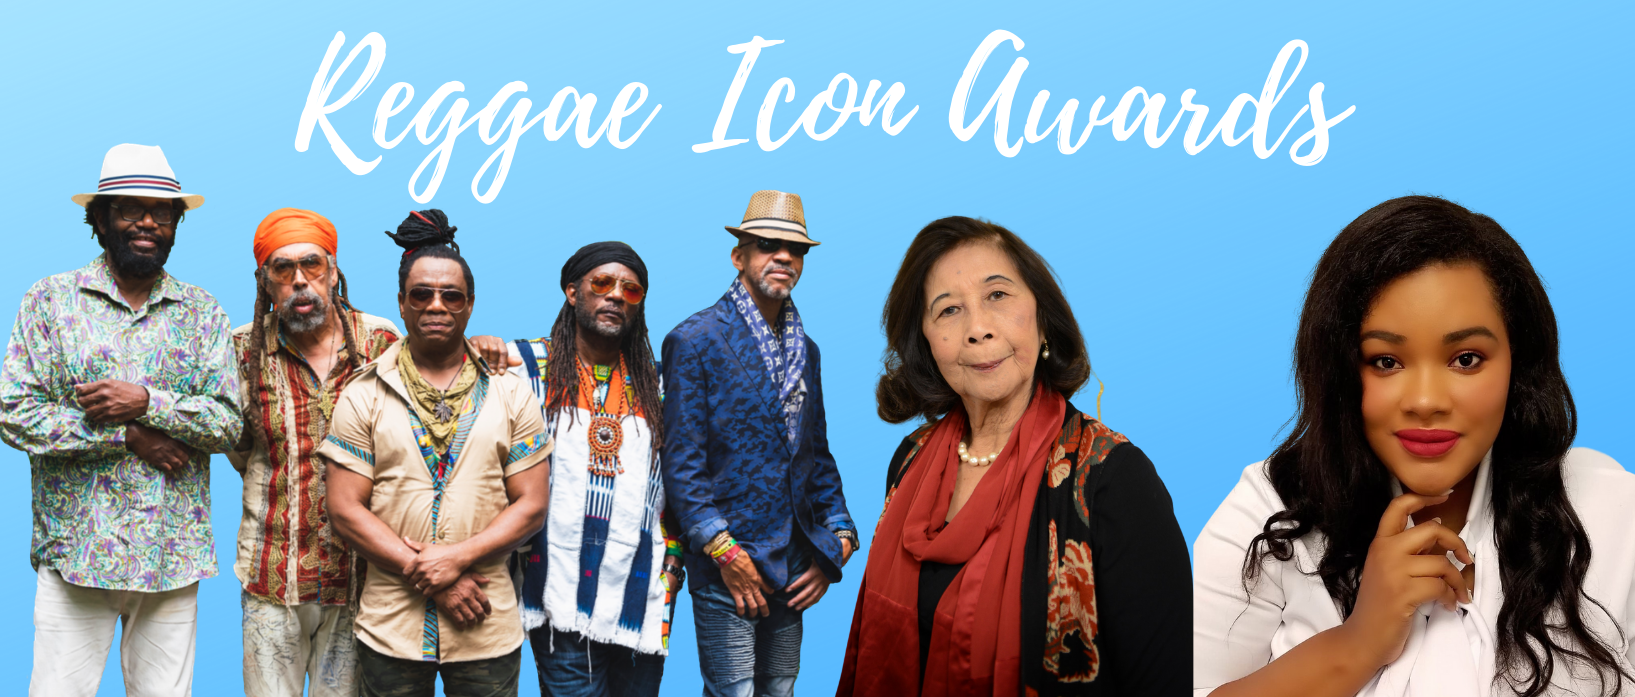 THIRD WORLD AND PATRICIA CHIN TO RECEIVE REGGAE ICON AWARDS; CITY OF MIRAMAR CELEBRATES BLACK HISTORY MEETS REGGAE MONTH